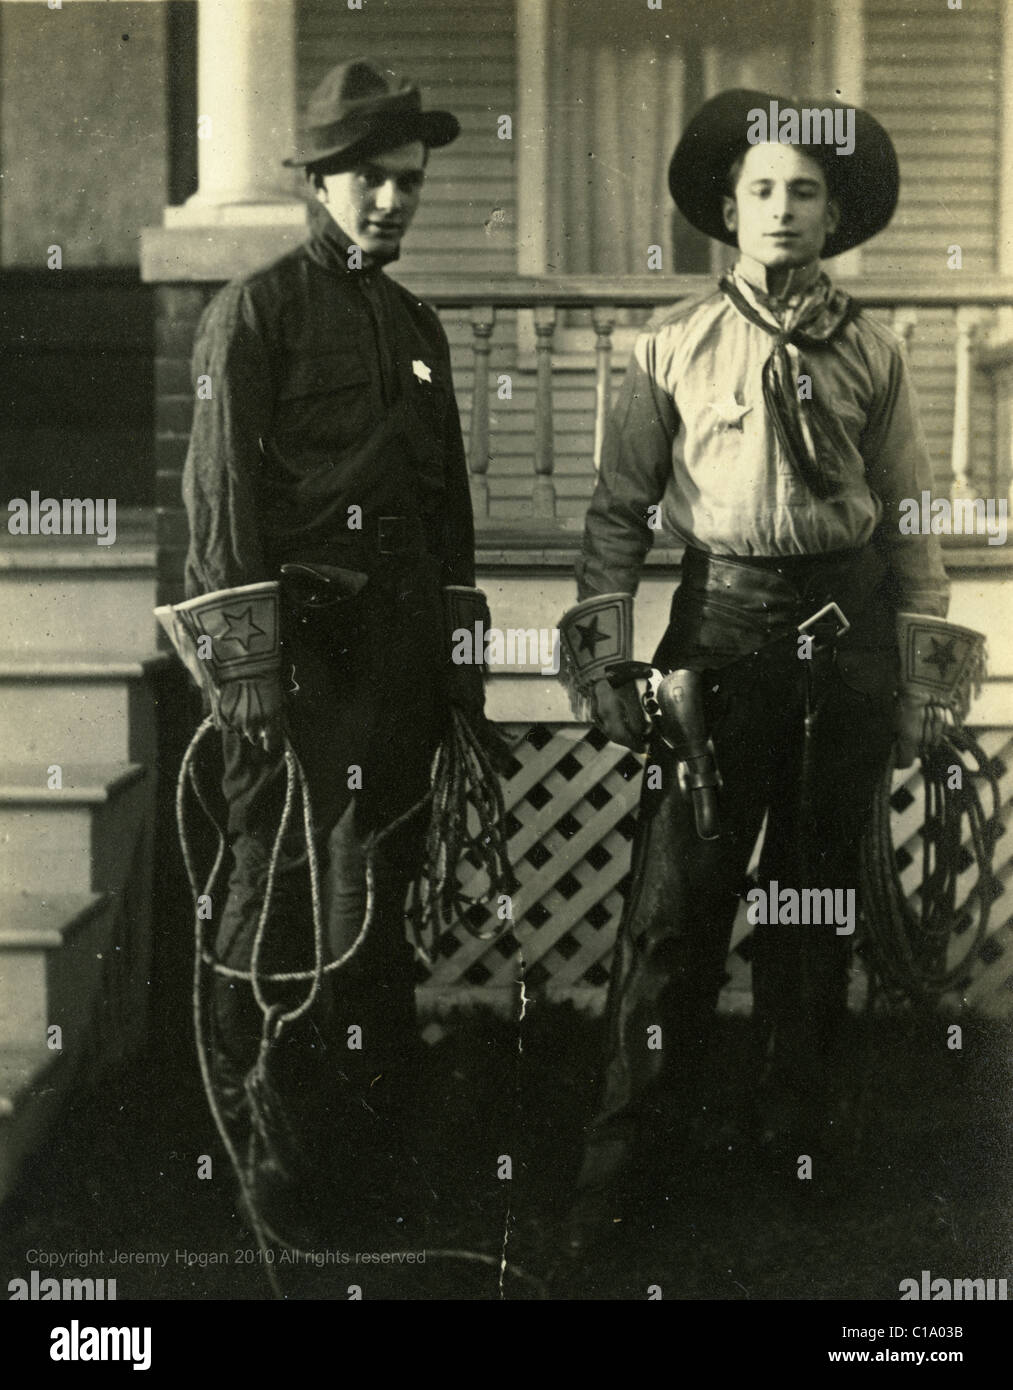 Cavalrymen dressed as cowboys with whips 1910s man veteran police sheriff - Stock Image